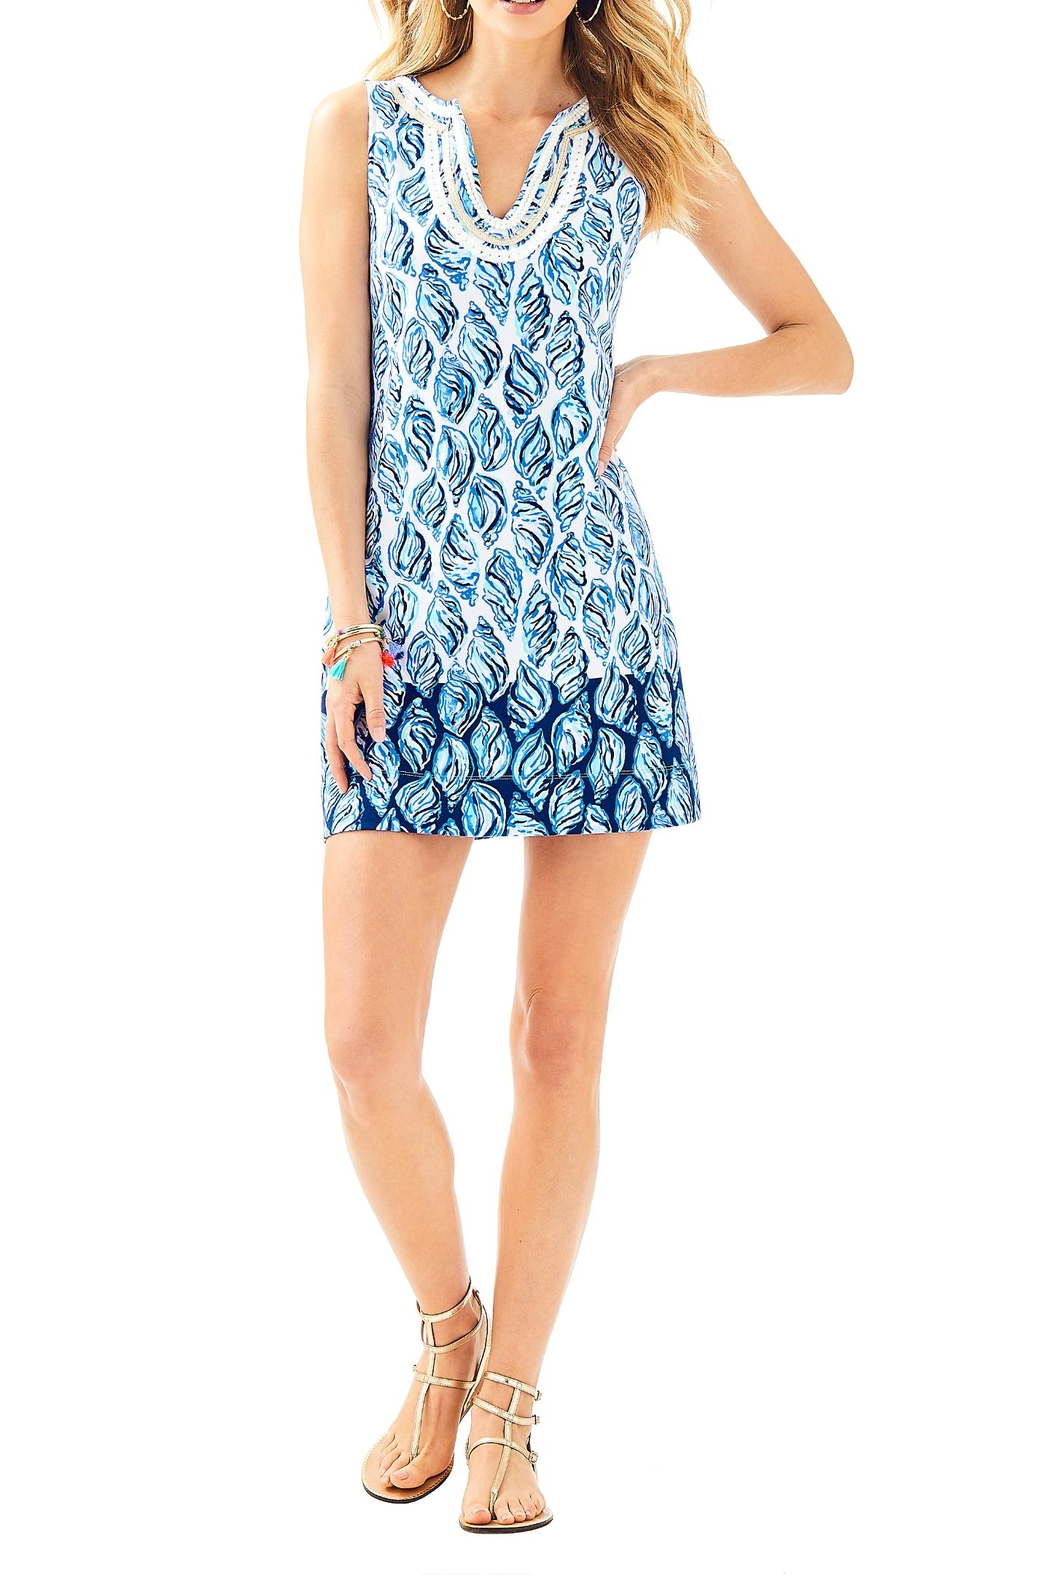 Lilly Pulitzer Harper Dress - Back Cropped Image